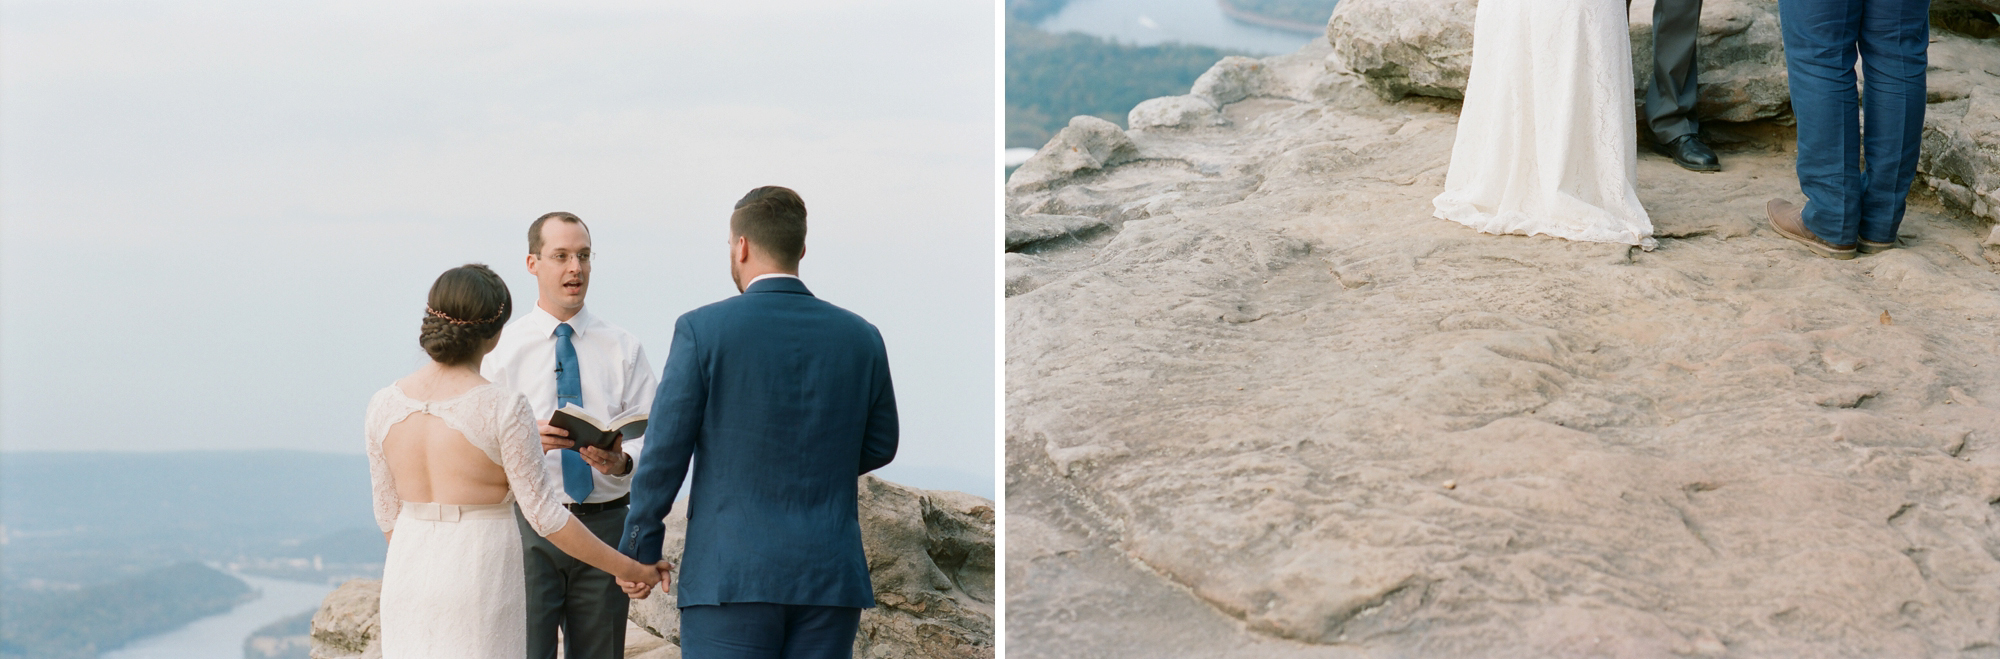 chattanooga-wedding-photographer_0028